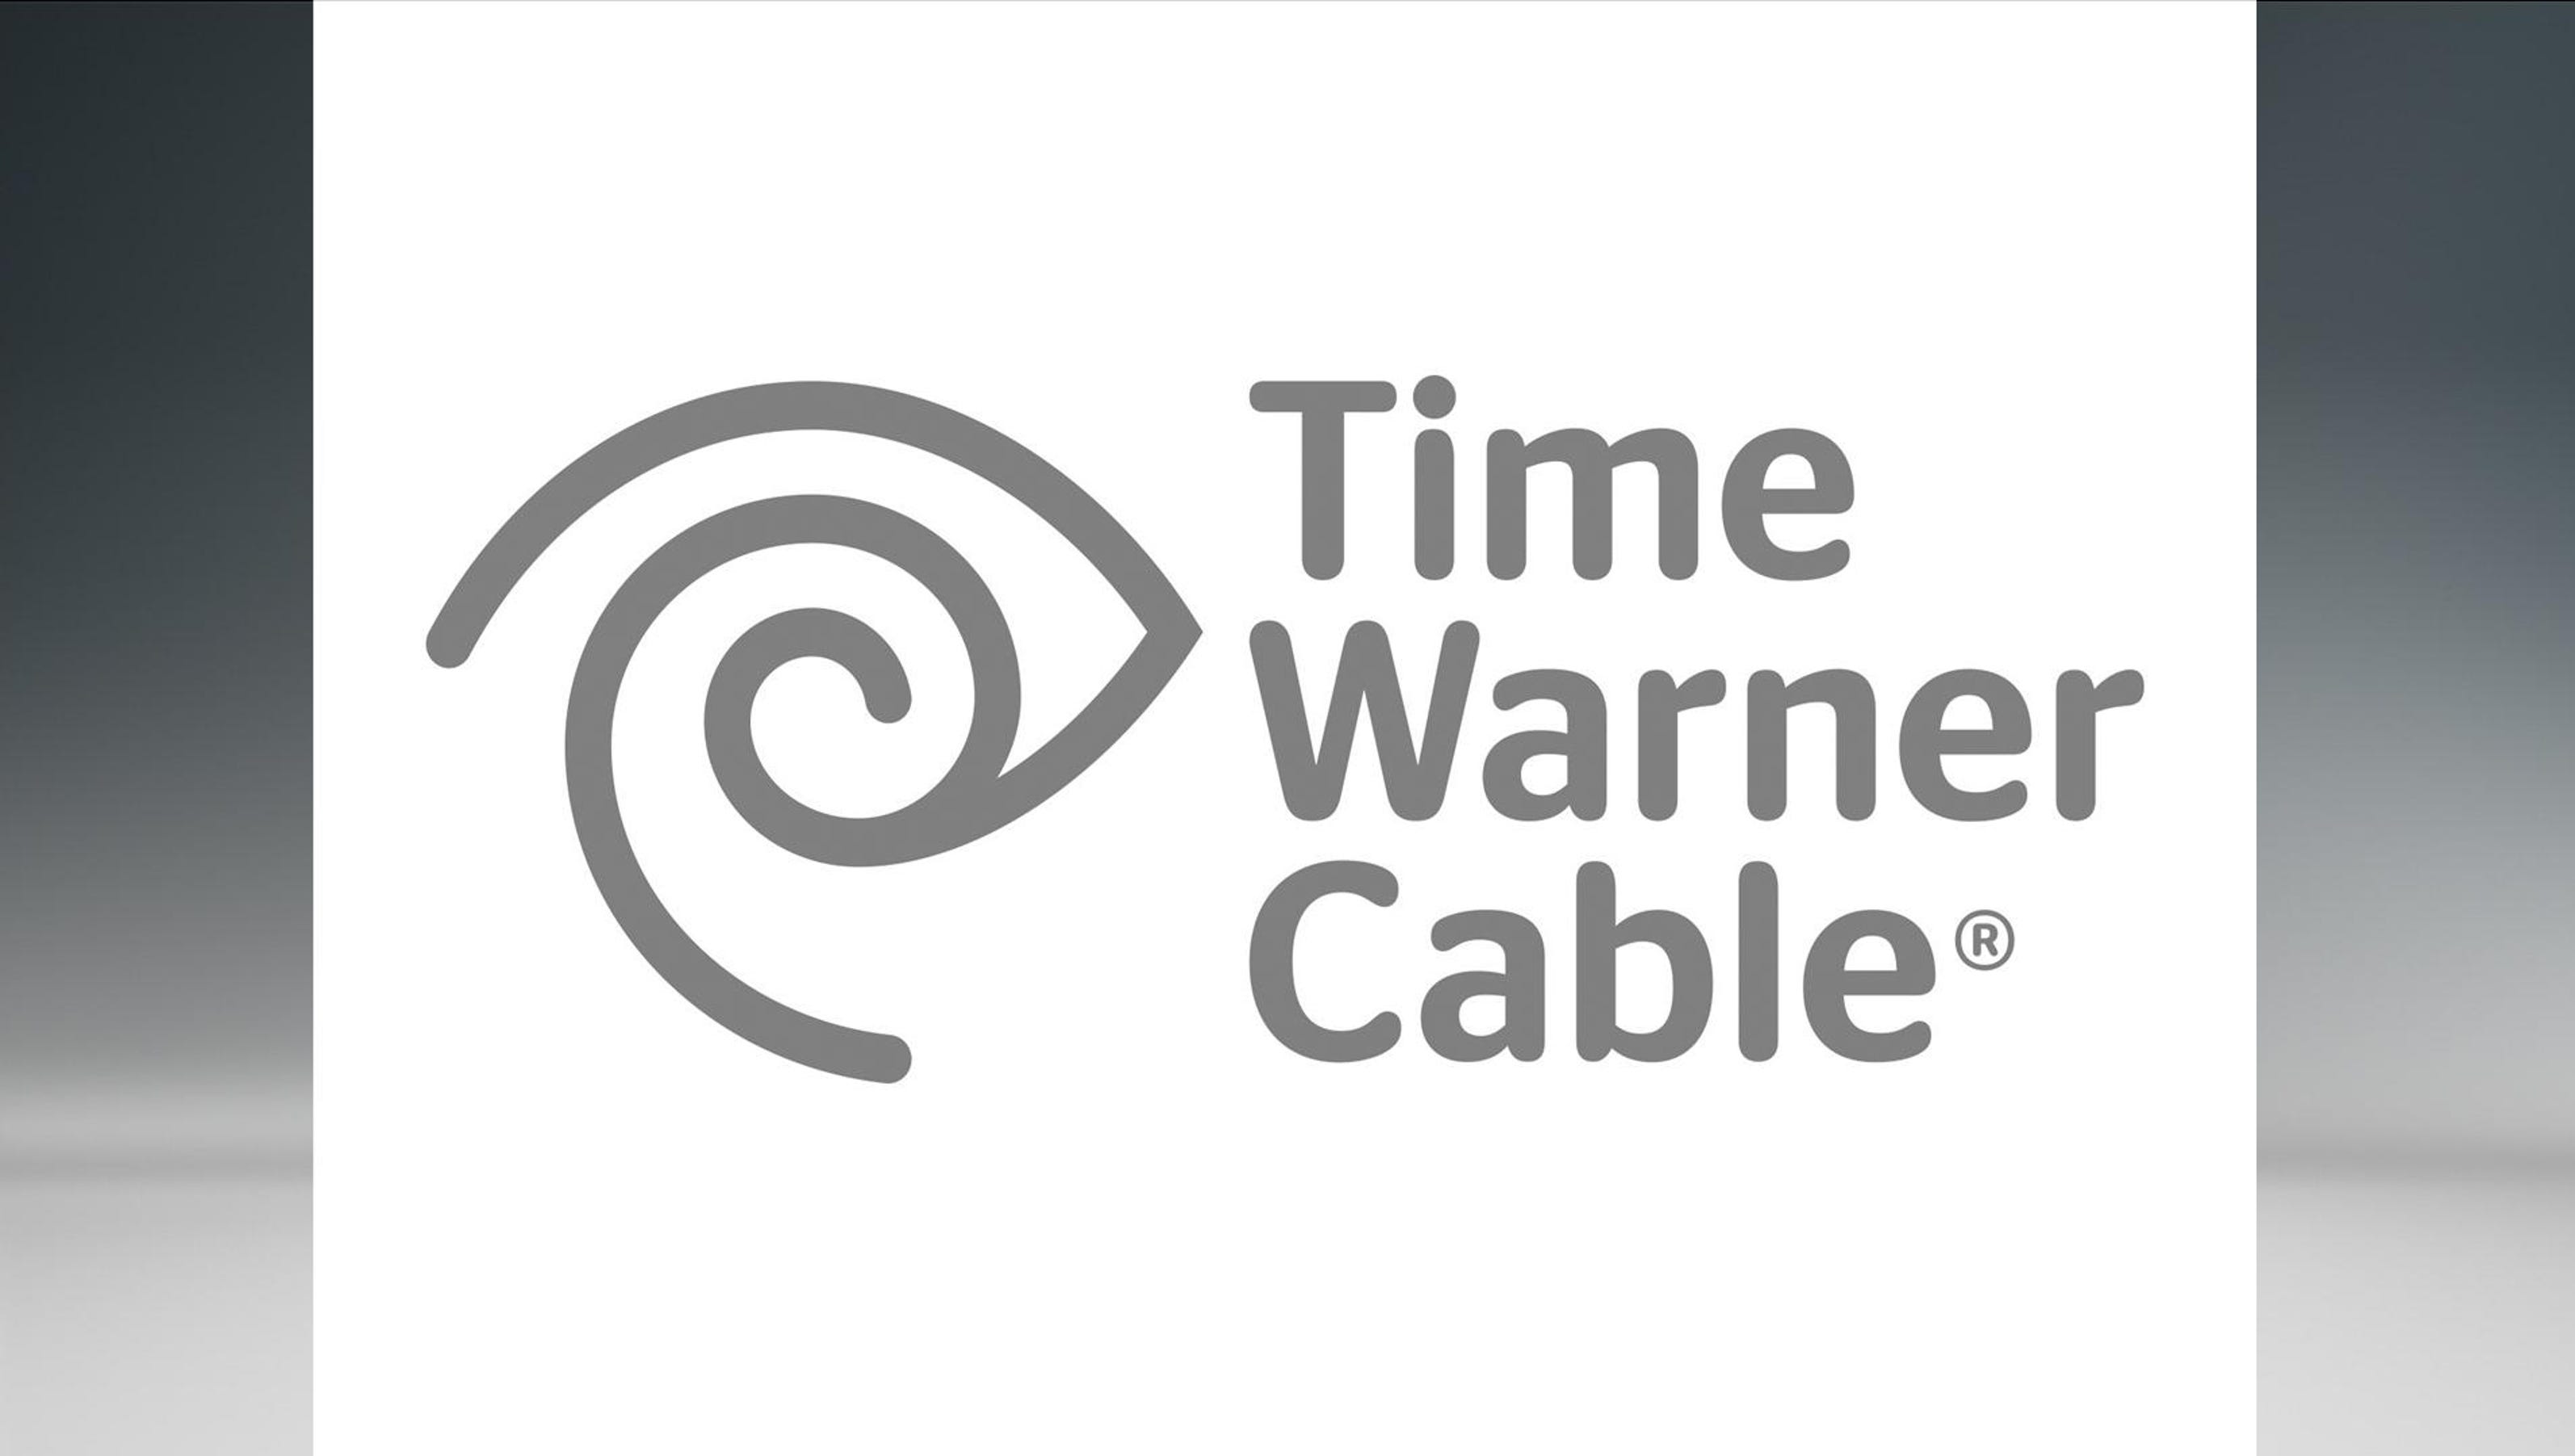 Time Warner Cable 8 News. likes. We are committed to providing local news coverage for Jamestown, NY and surrounding areas.